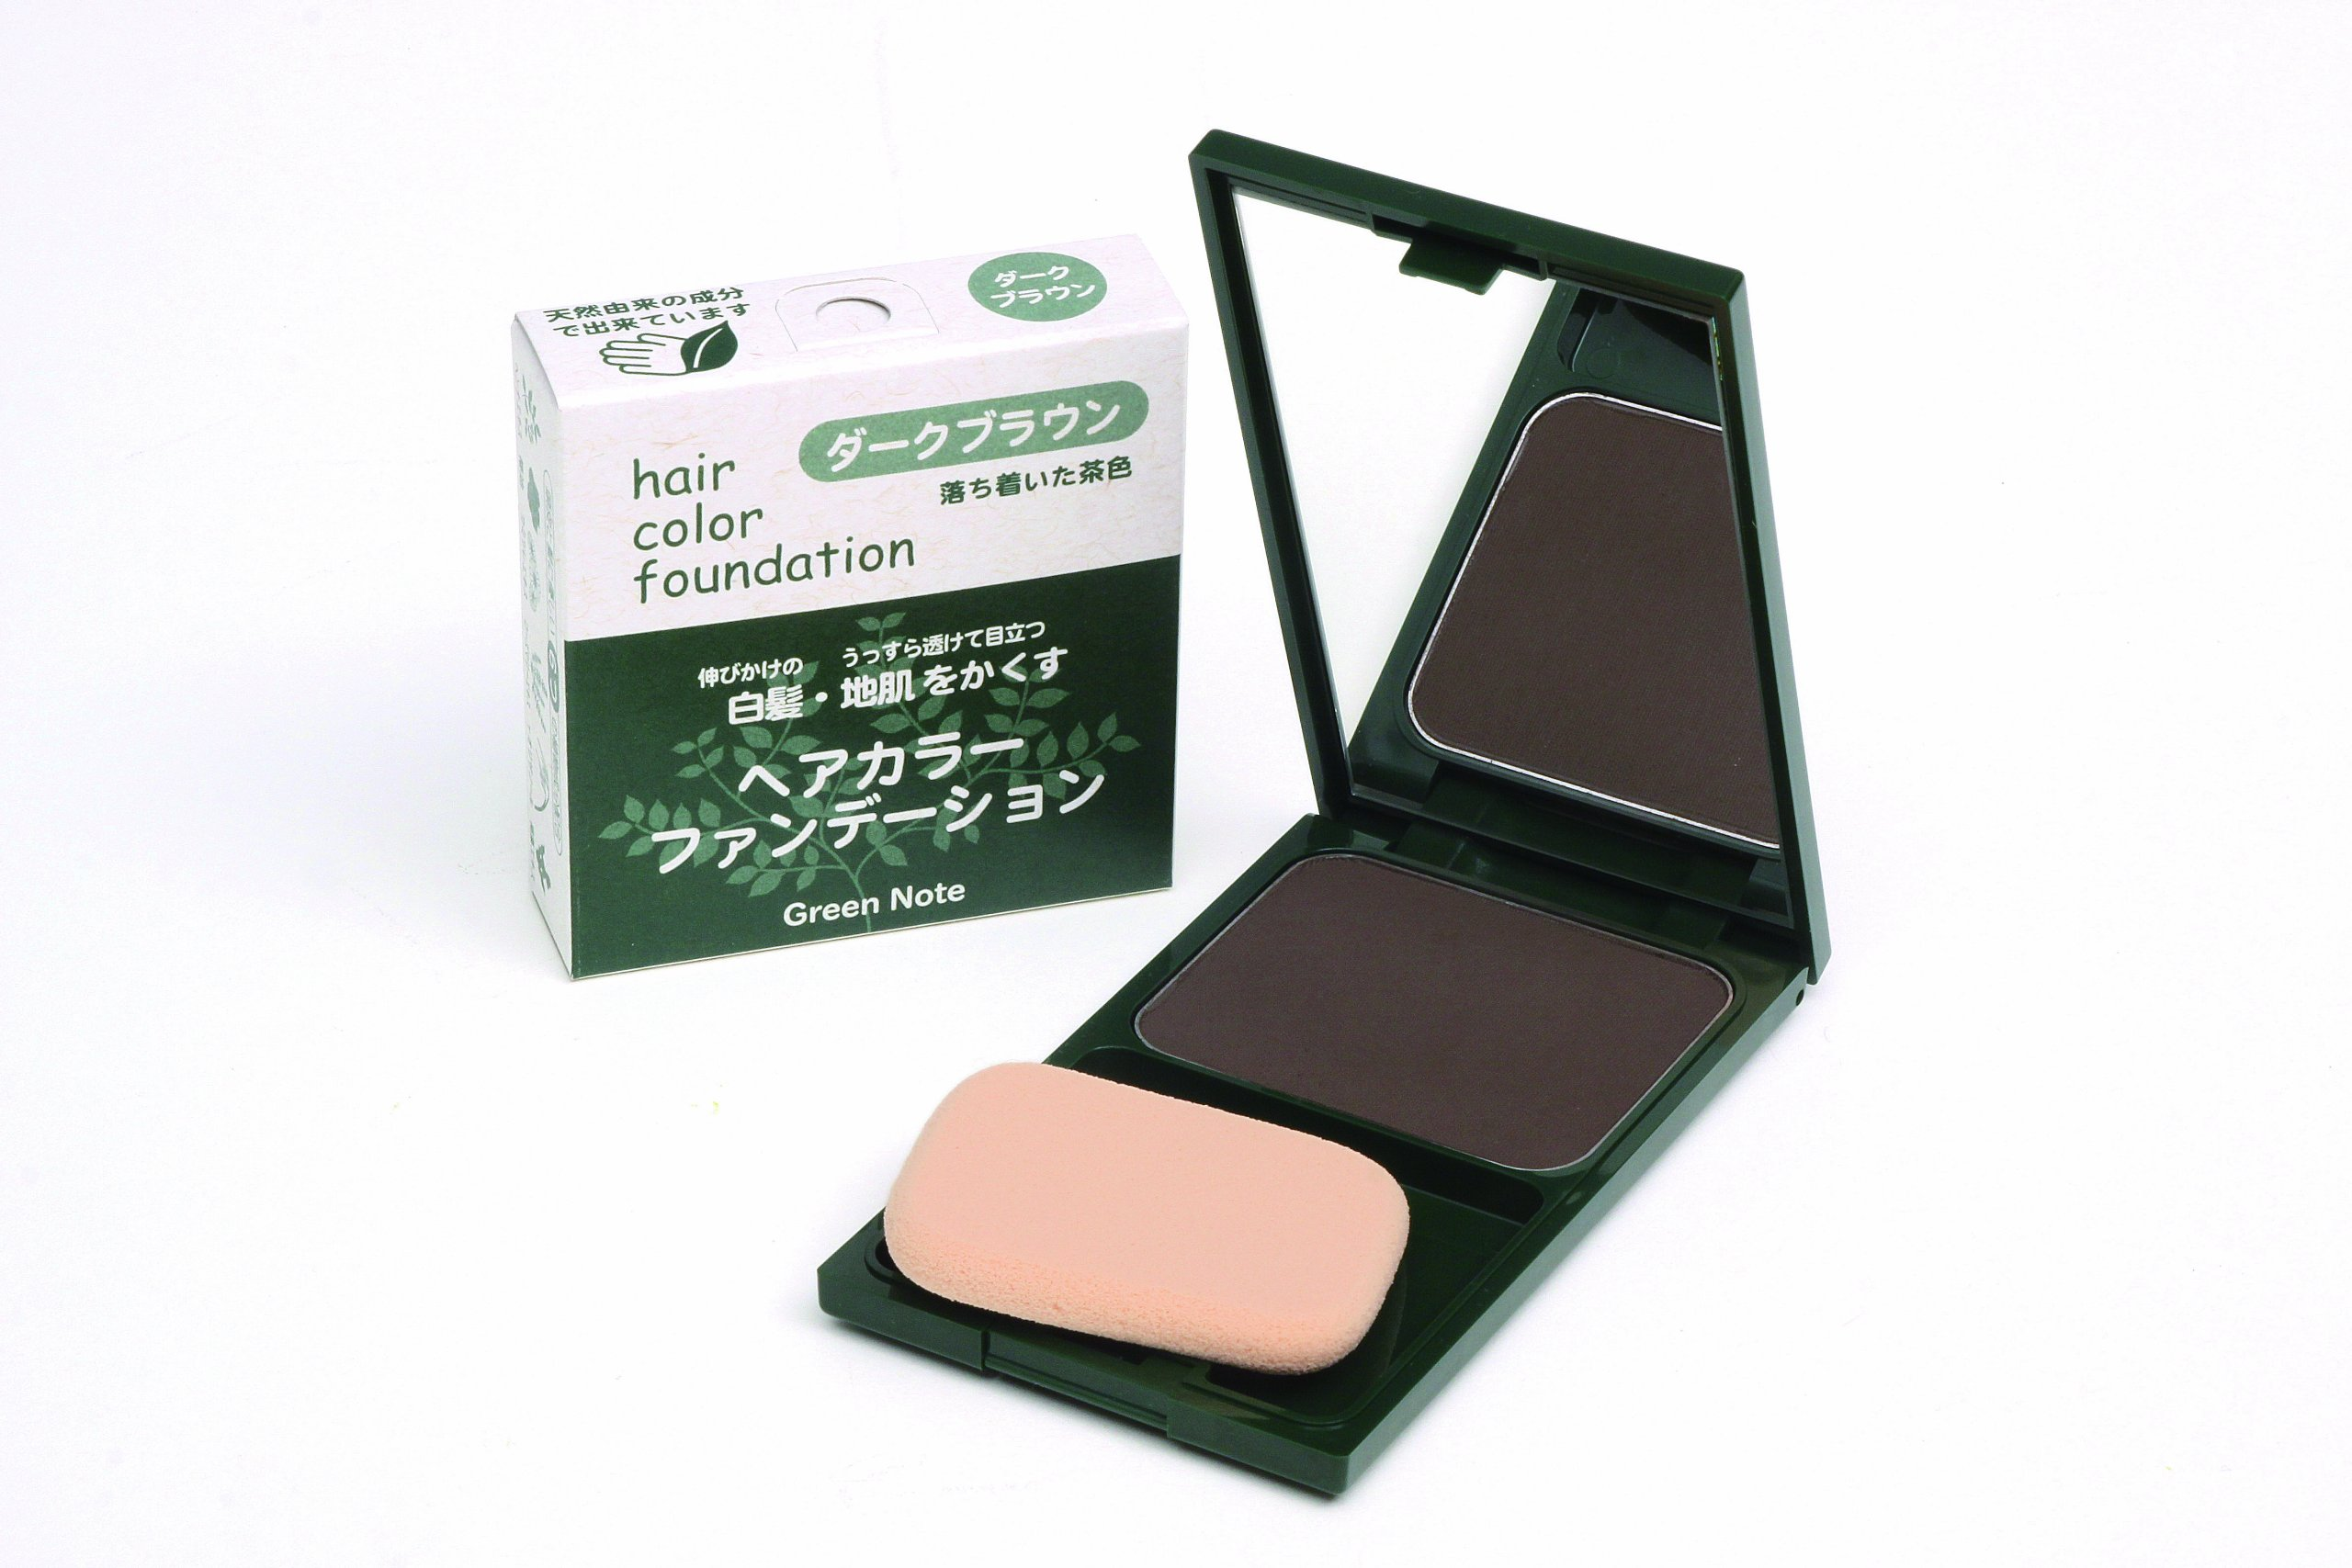 Green note hair color foundation Dark Brown by Hair color foundation